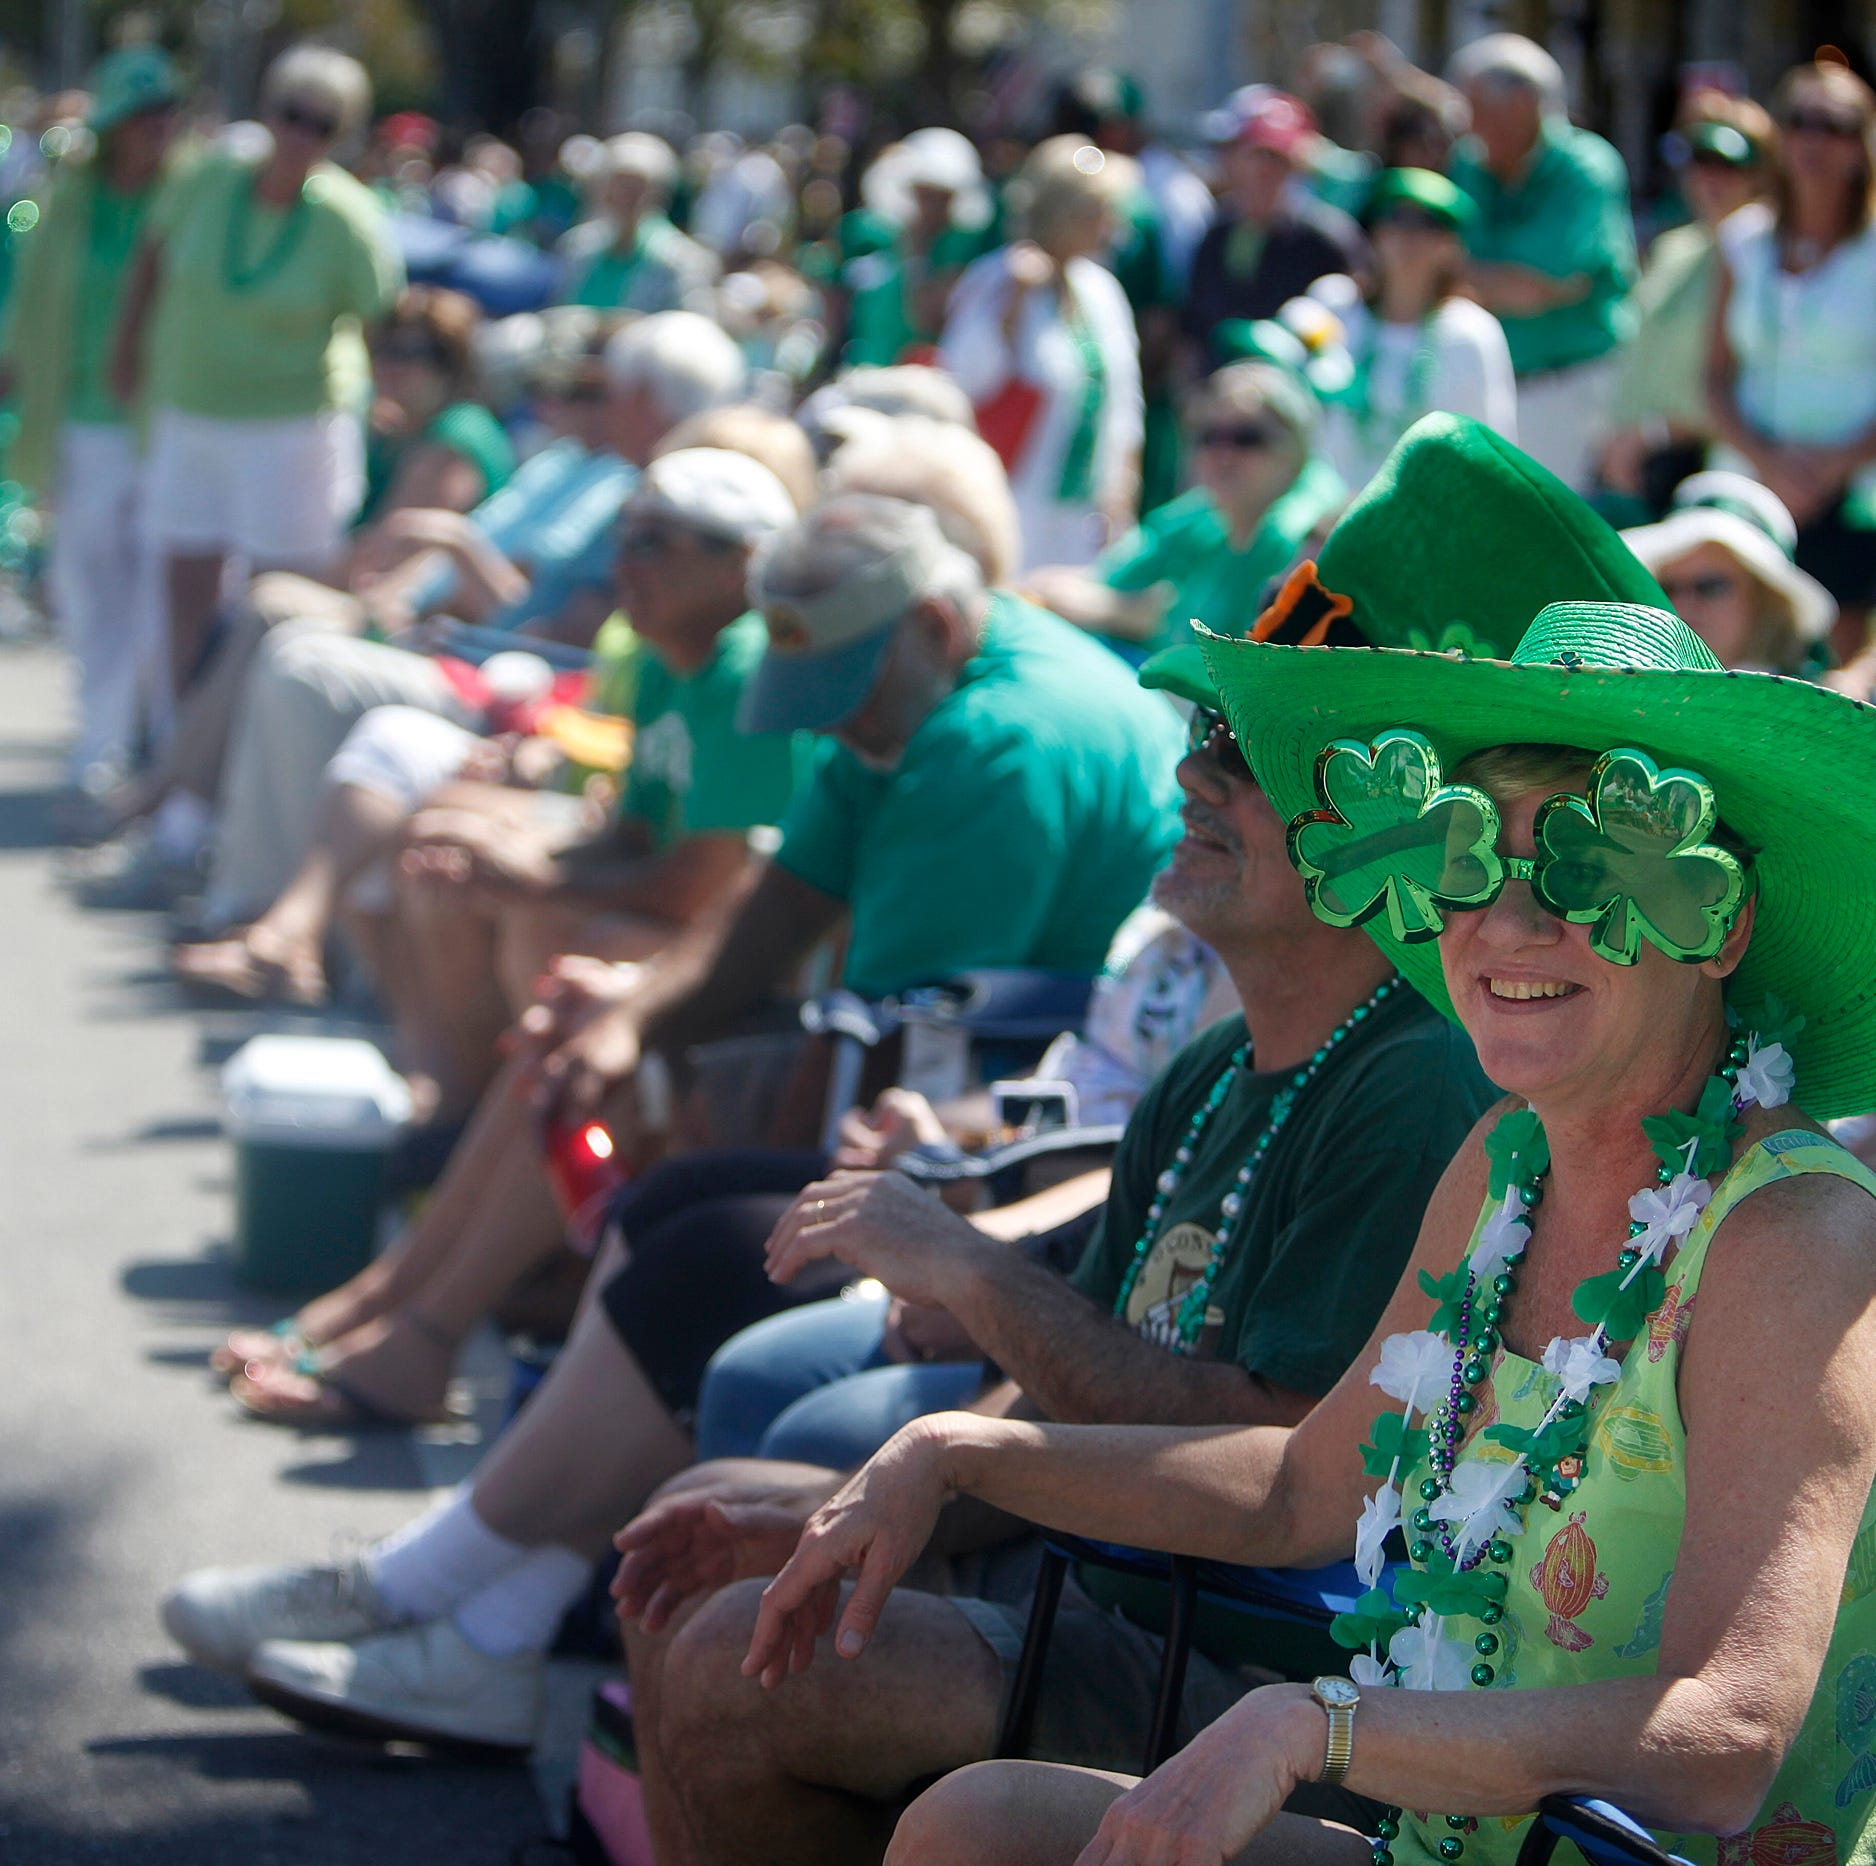 Going to the Naples St. Patrick's Day Parade? Here's everything you need to know